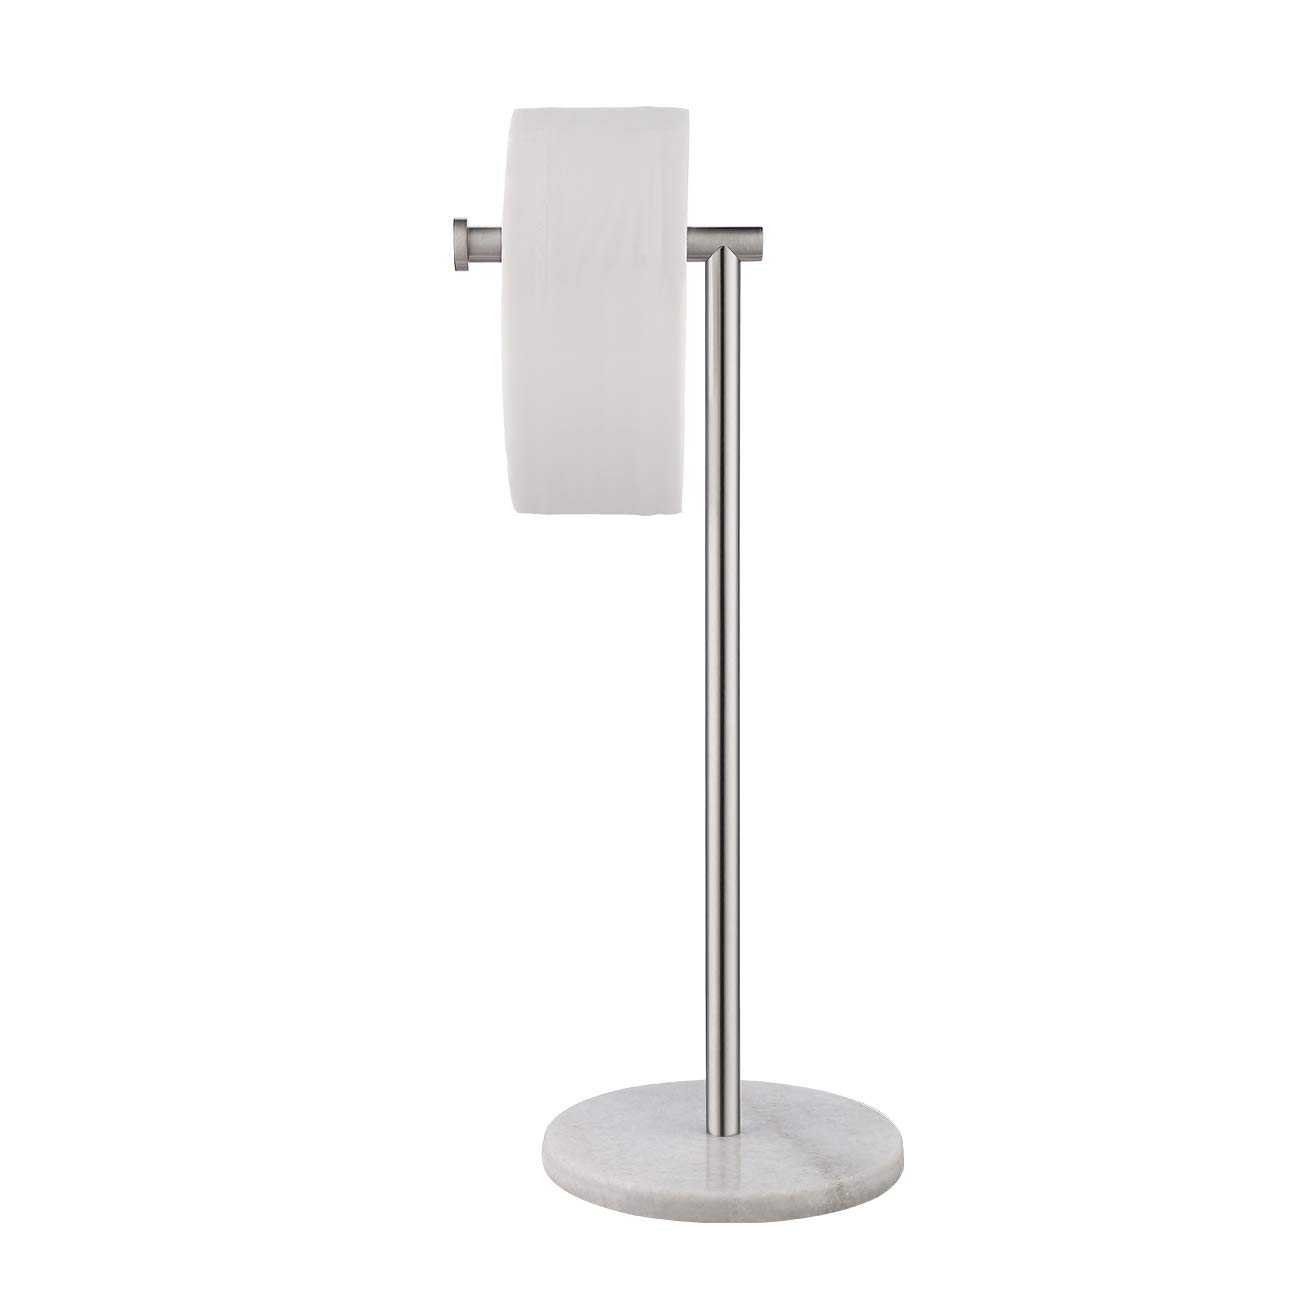 KES Natural Marble Toilet Paper Holder Stand Tissue Roll Holder with Modern Marble Base, SUS304 Stainless Steel Brushed Finish BPH284S1-2